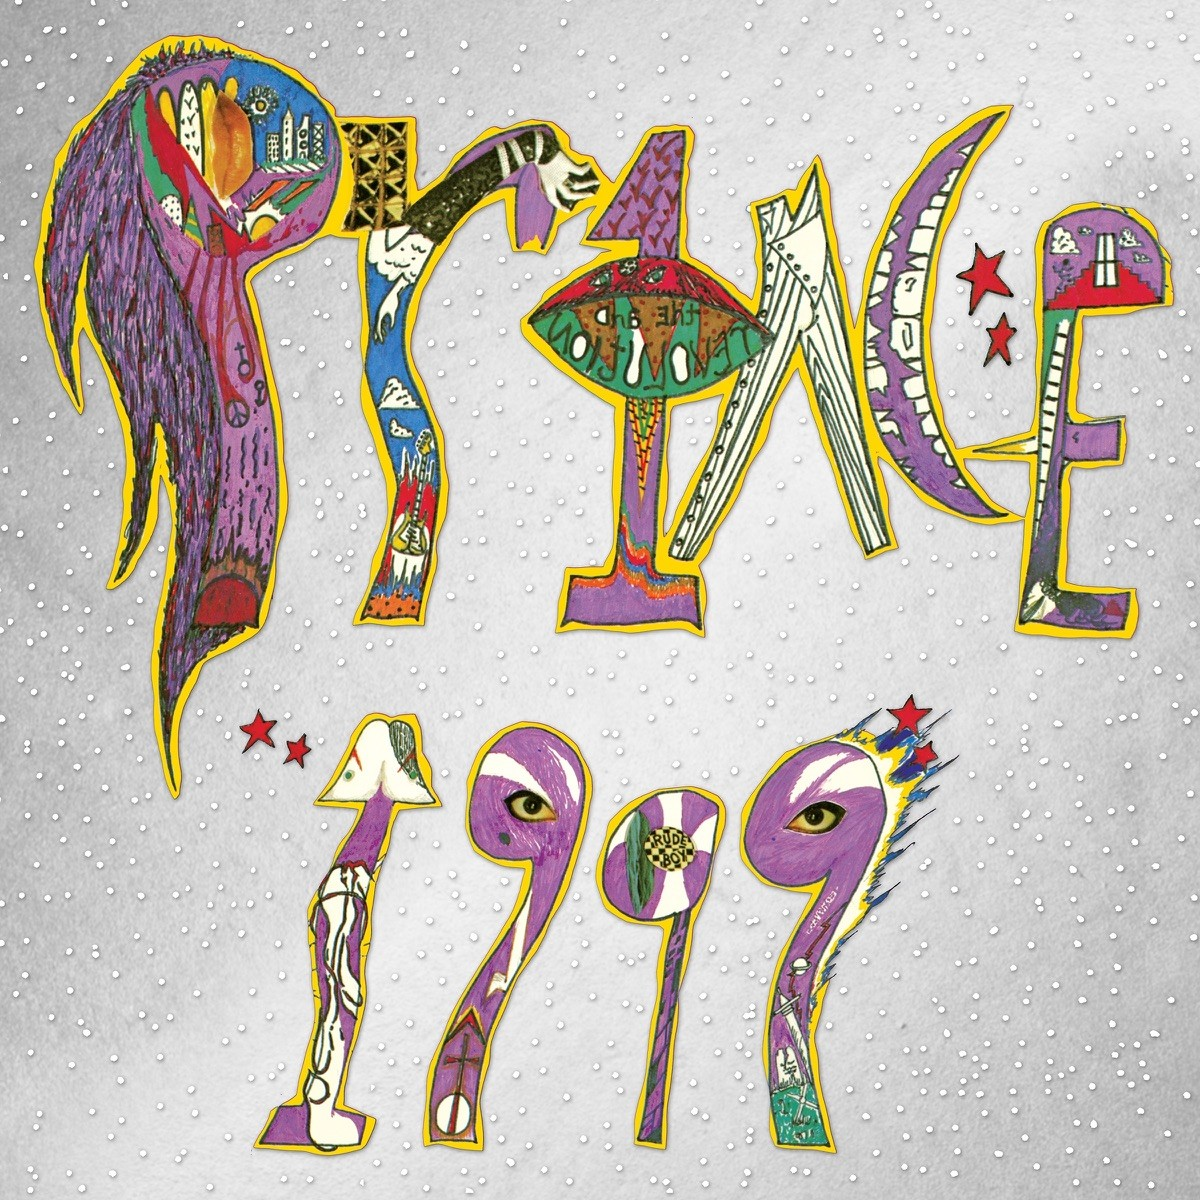 Prince - 1999 (Super Deluxe Edition) CD+DVD - 0349785006